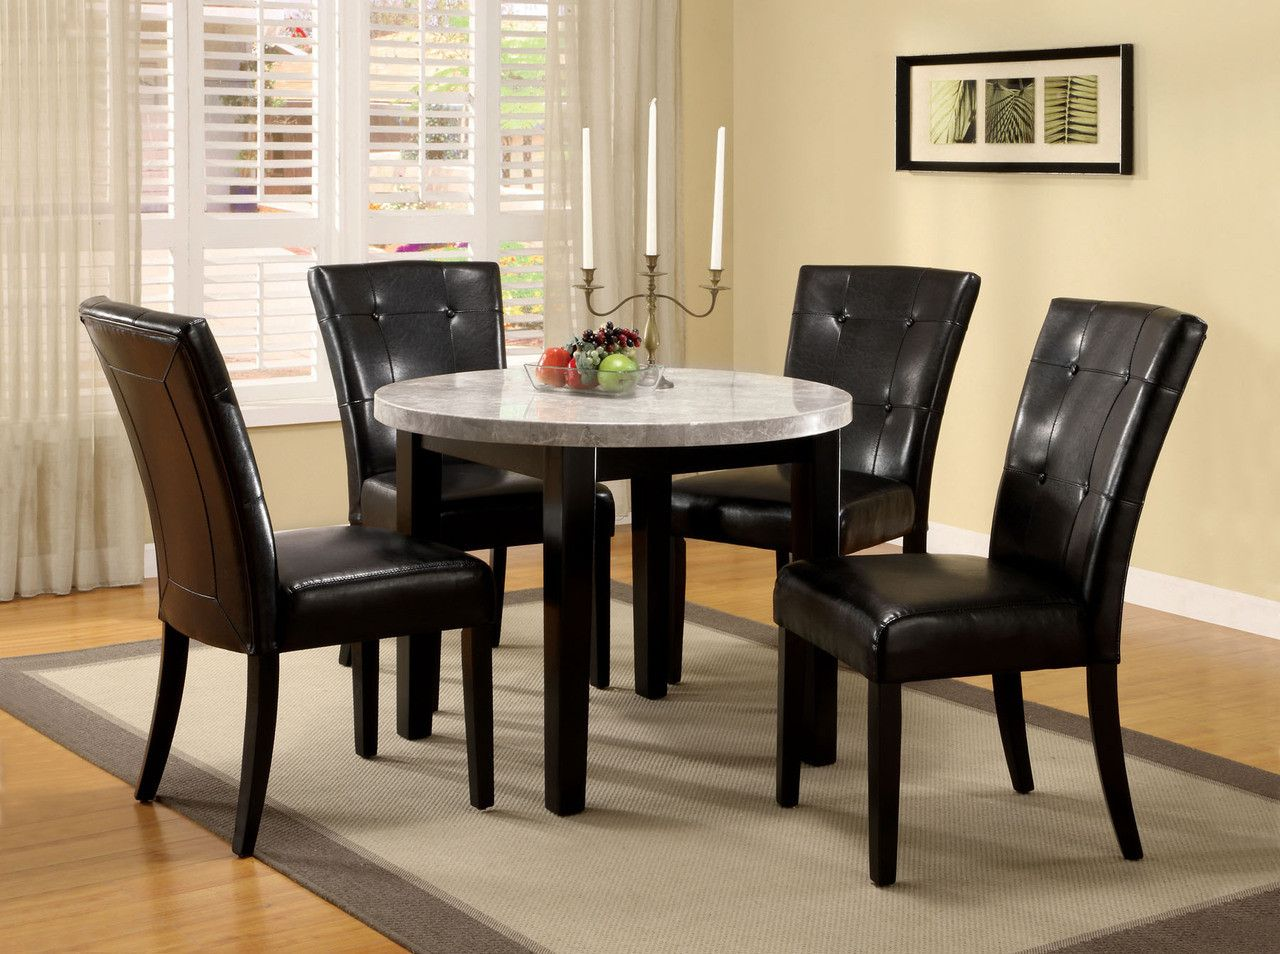 Furniture Of America Dining Table Round 40 With Marble Top And 6